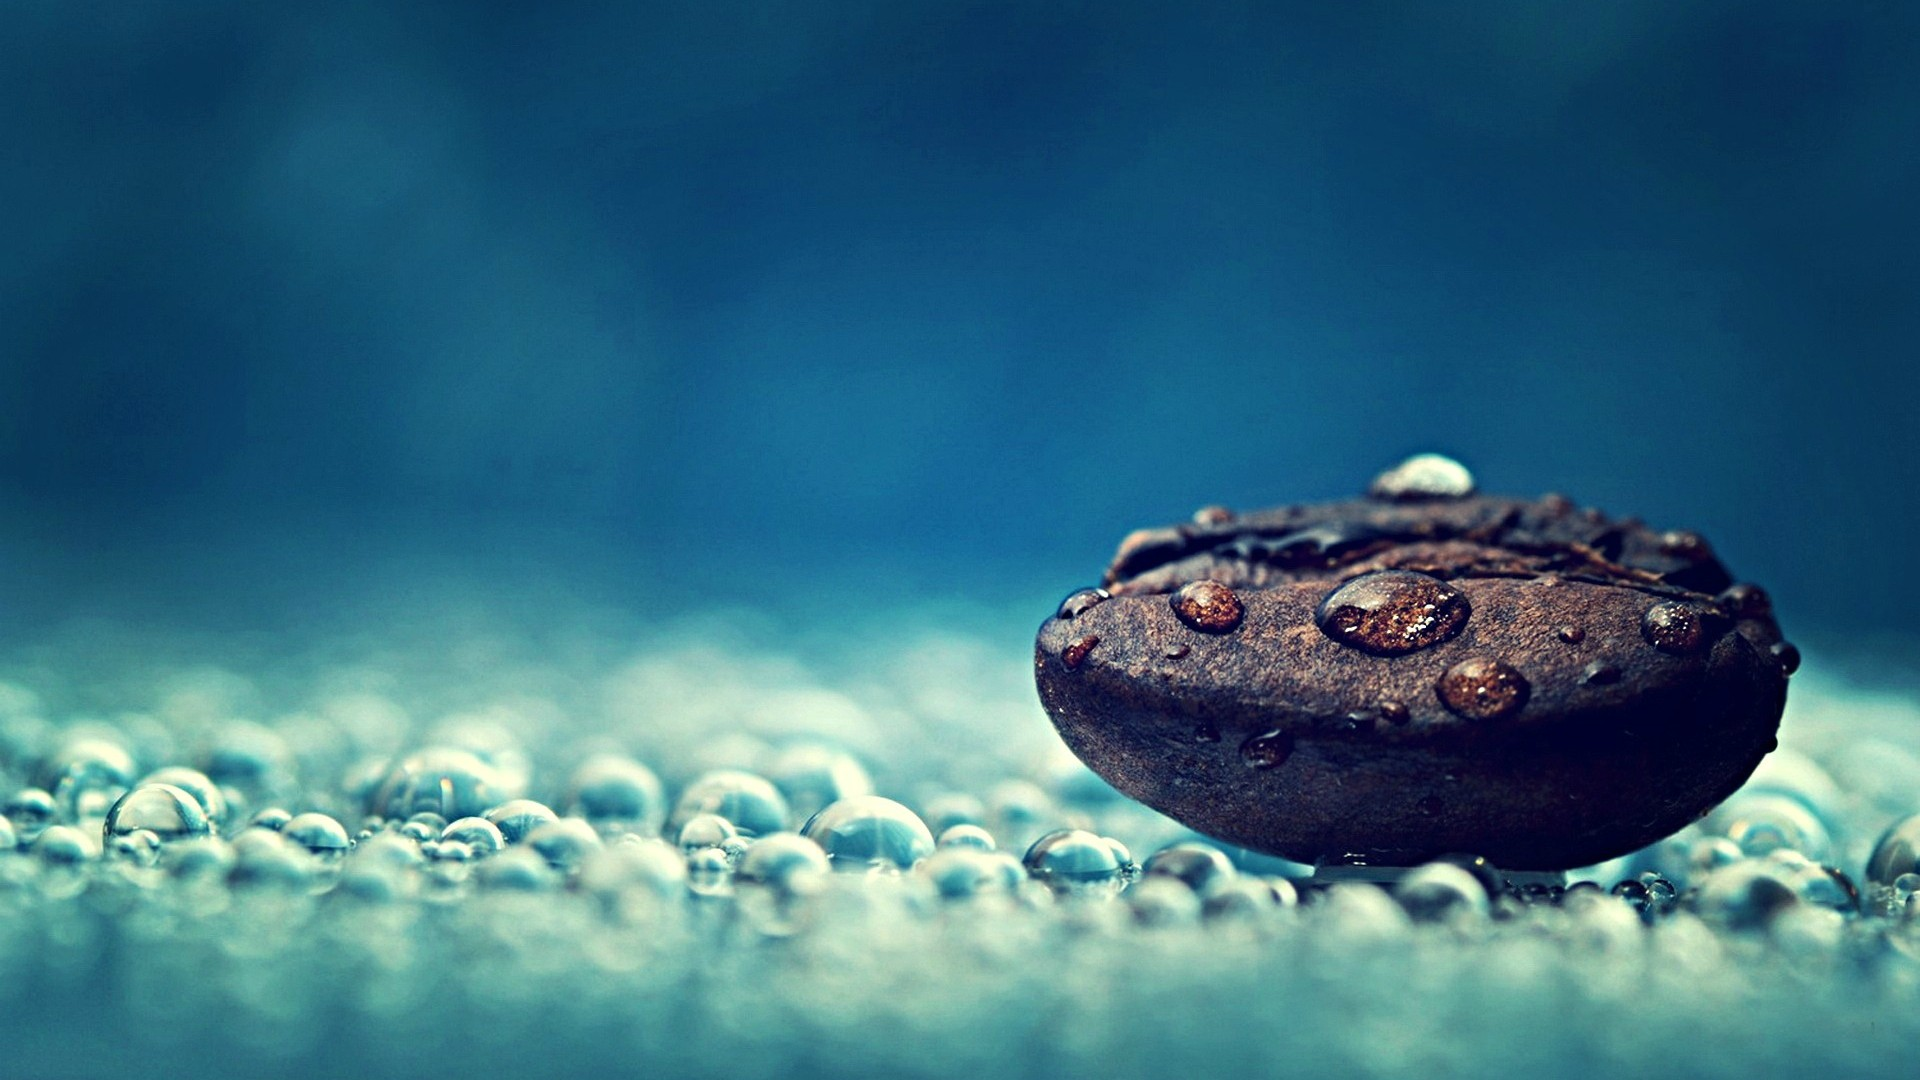 General 1920x1080 artwork macro photography closeup water drops coffee beans blue background depth of field food